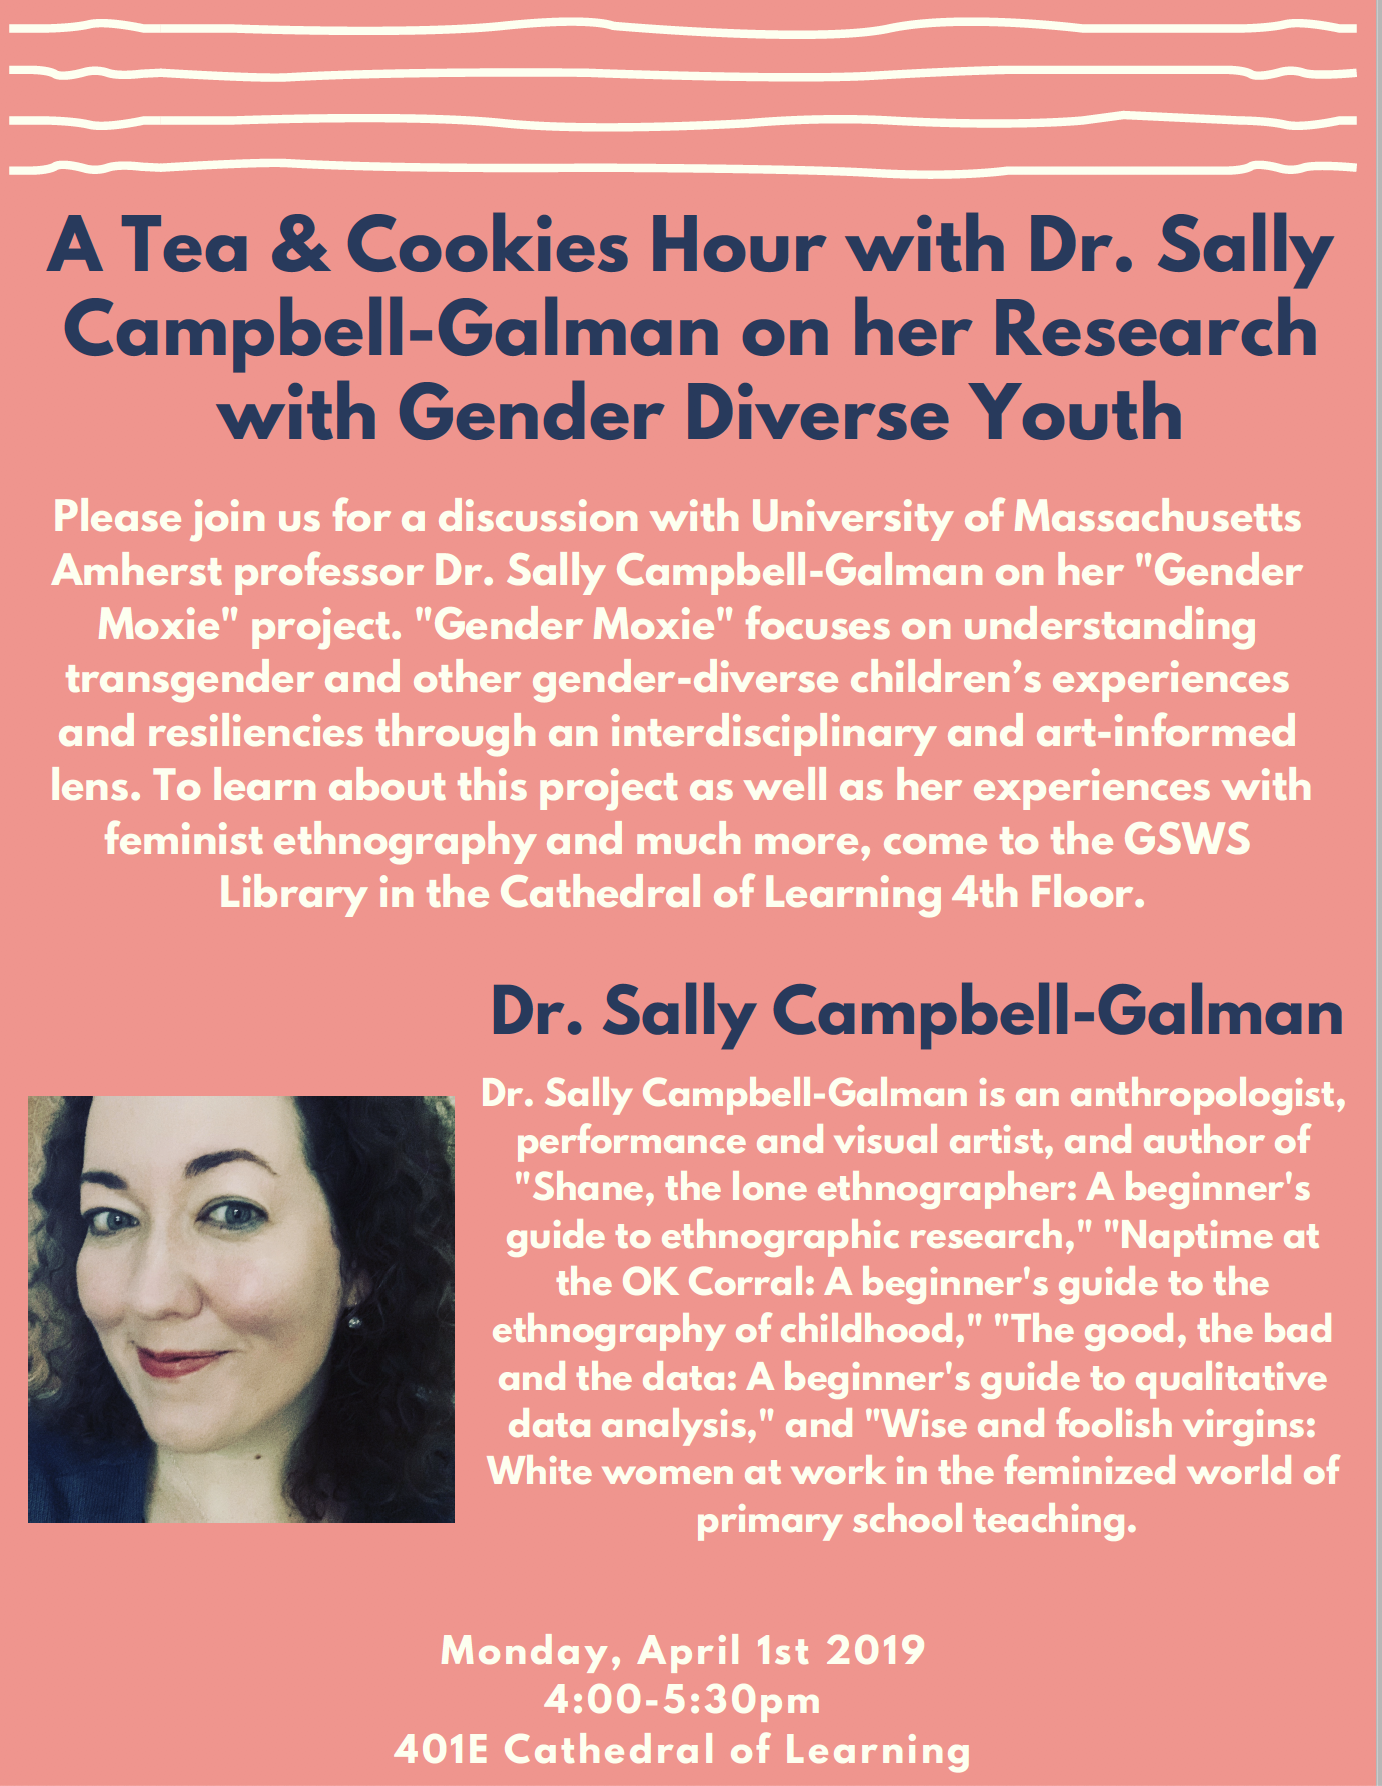 Cookies and Tea and Gender Diversity in Pittsburgh